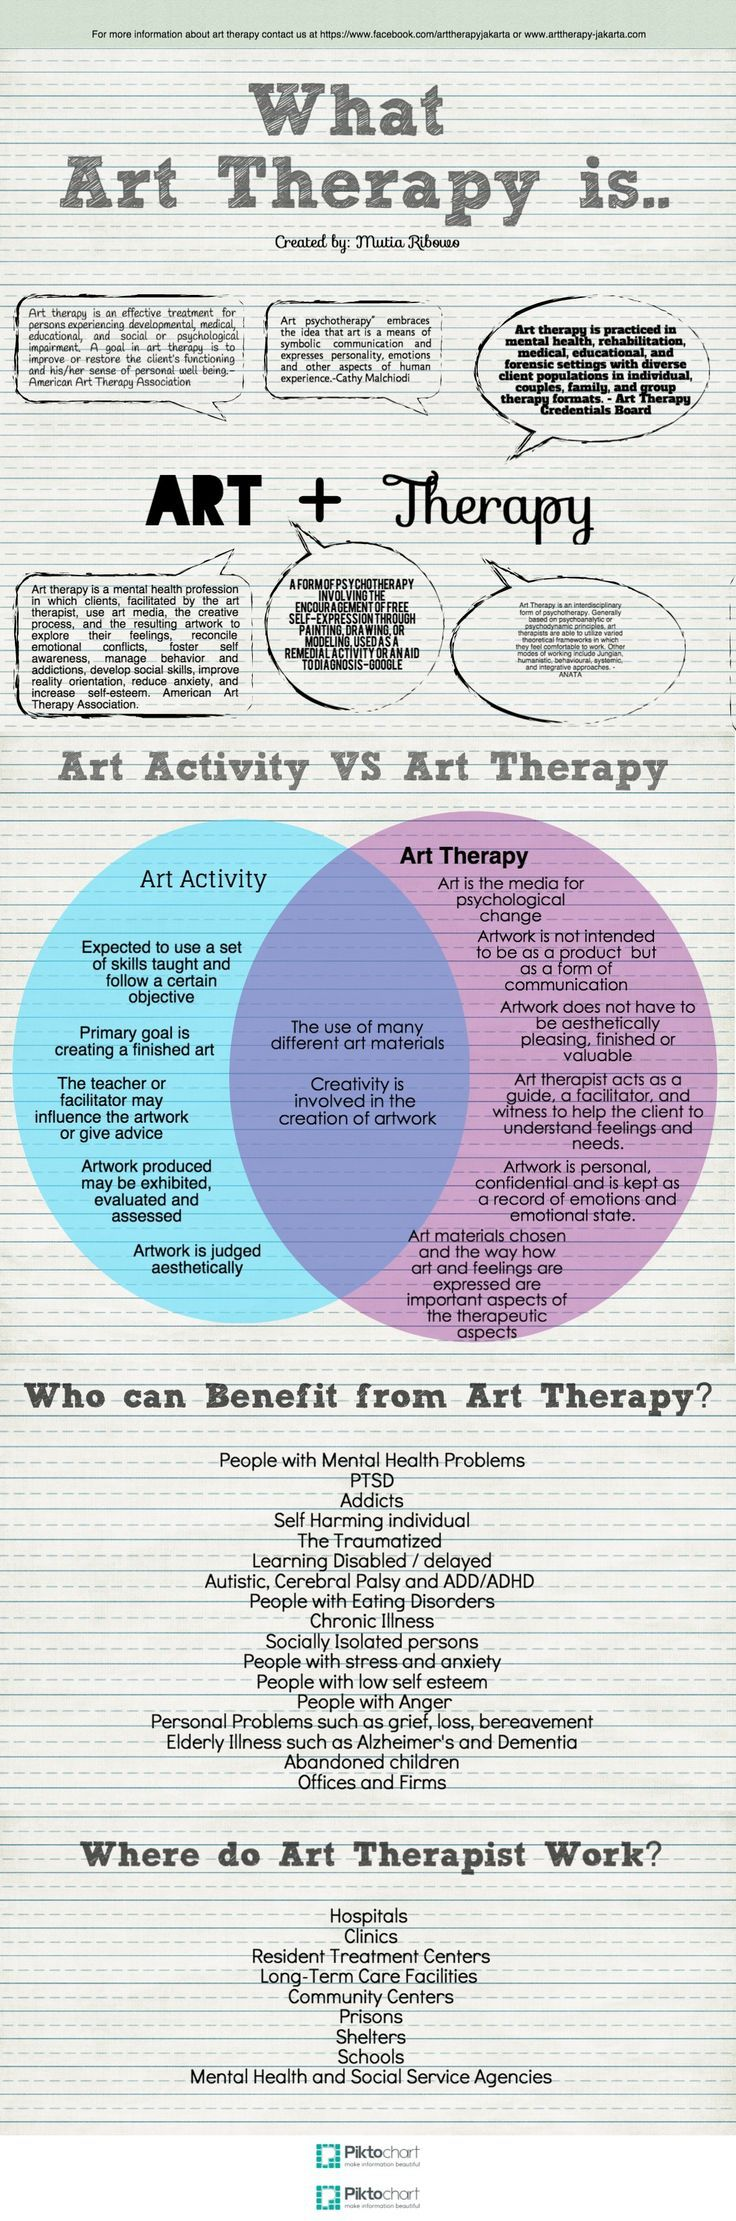 Psychology : Information about art therapy, how art therapy differ from art activities, and w…